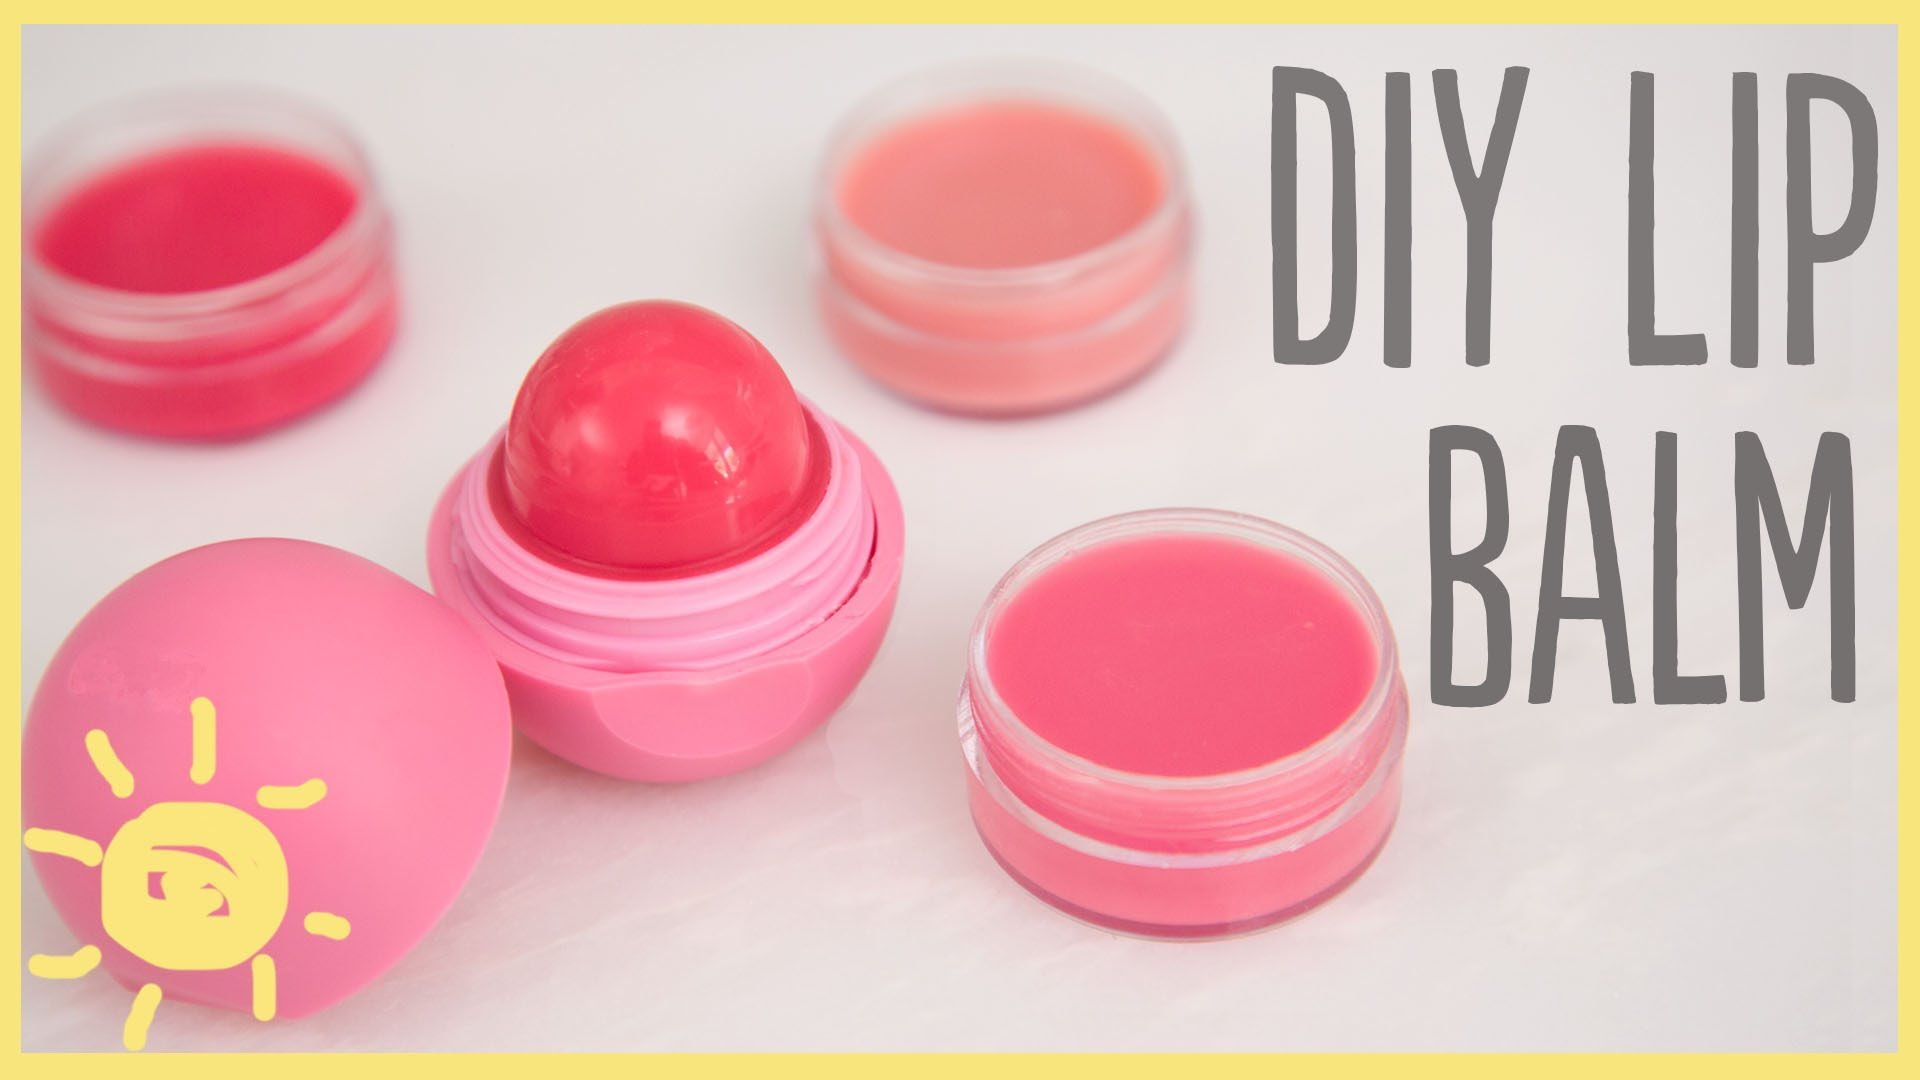 Did you know that you can make homemade lip balm in 5